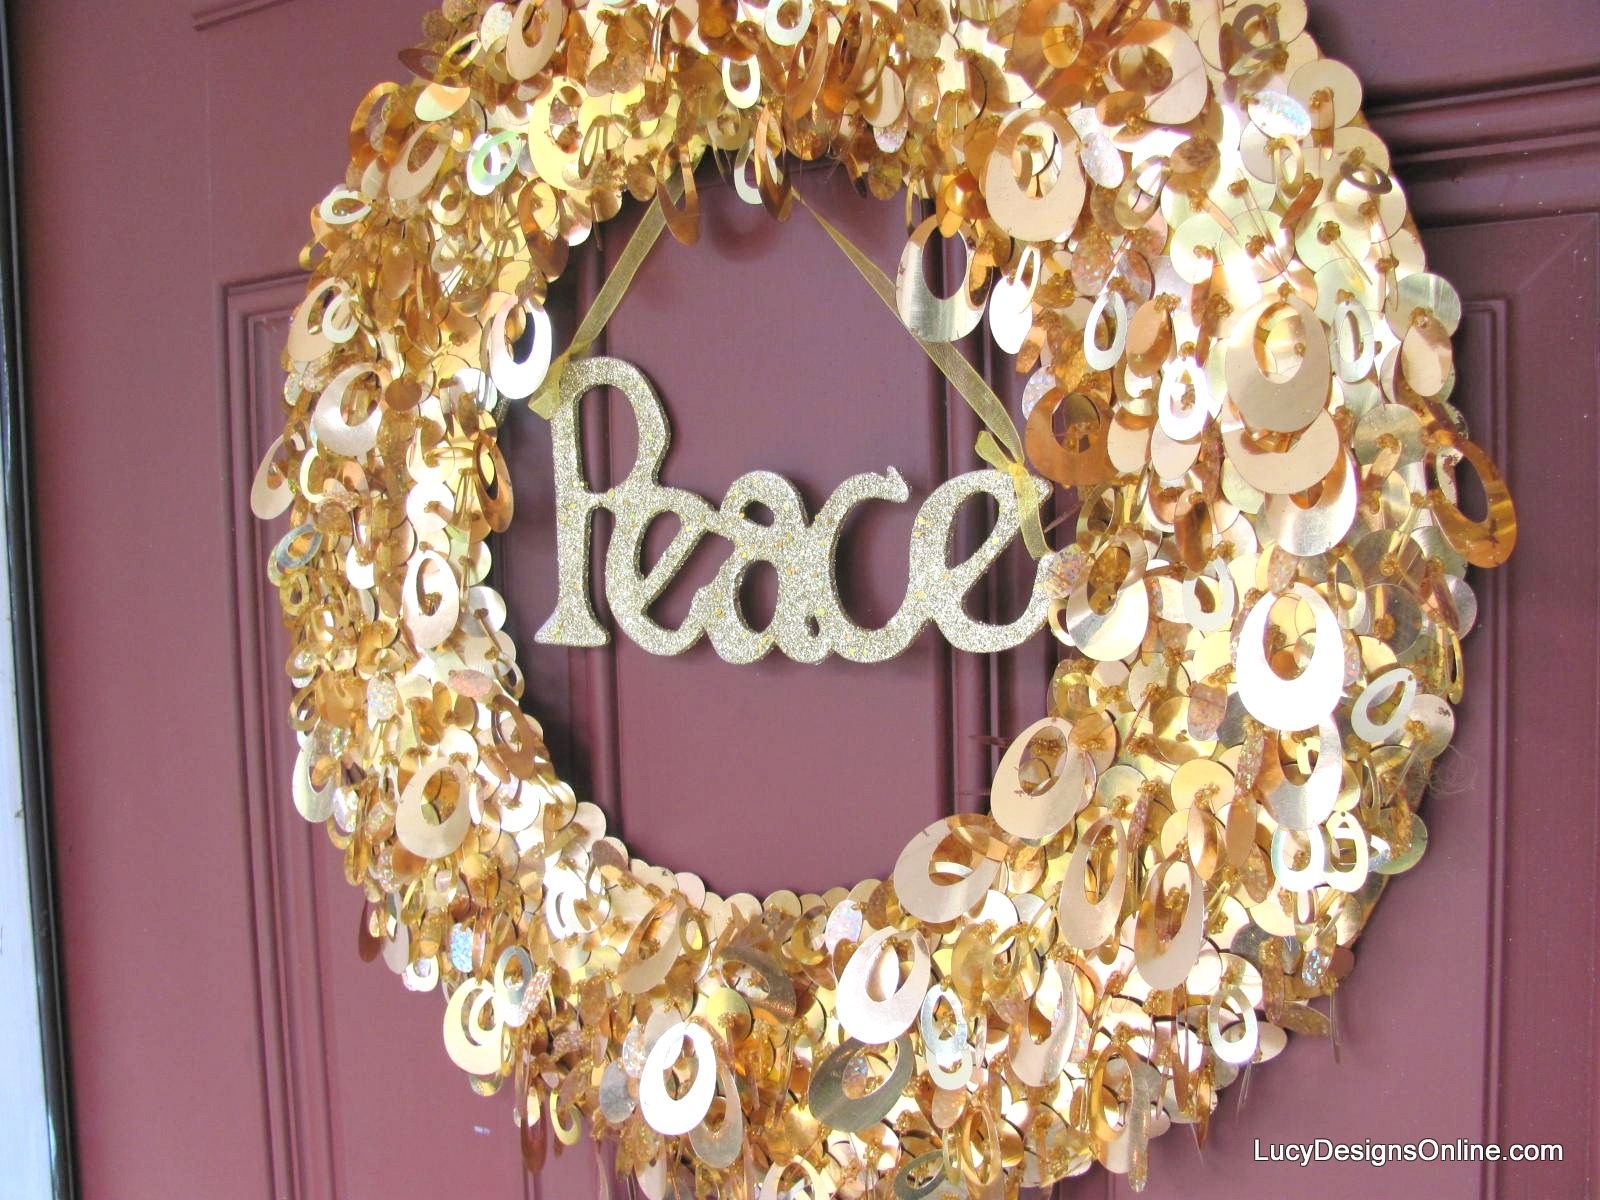 sparkly Christmas wreath with peace sign